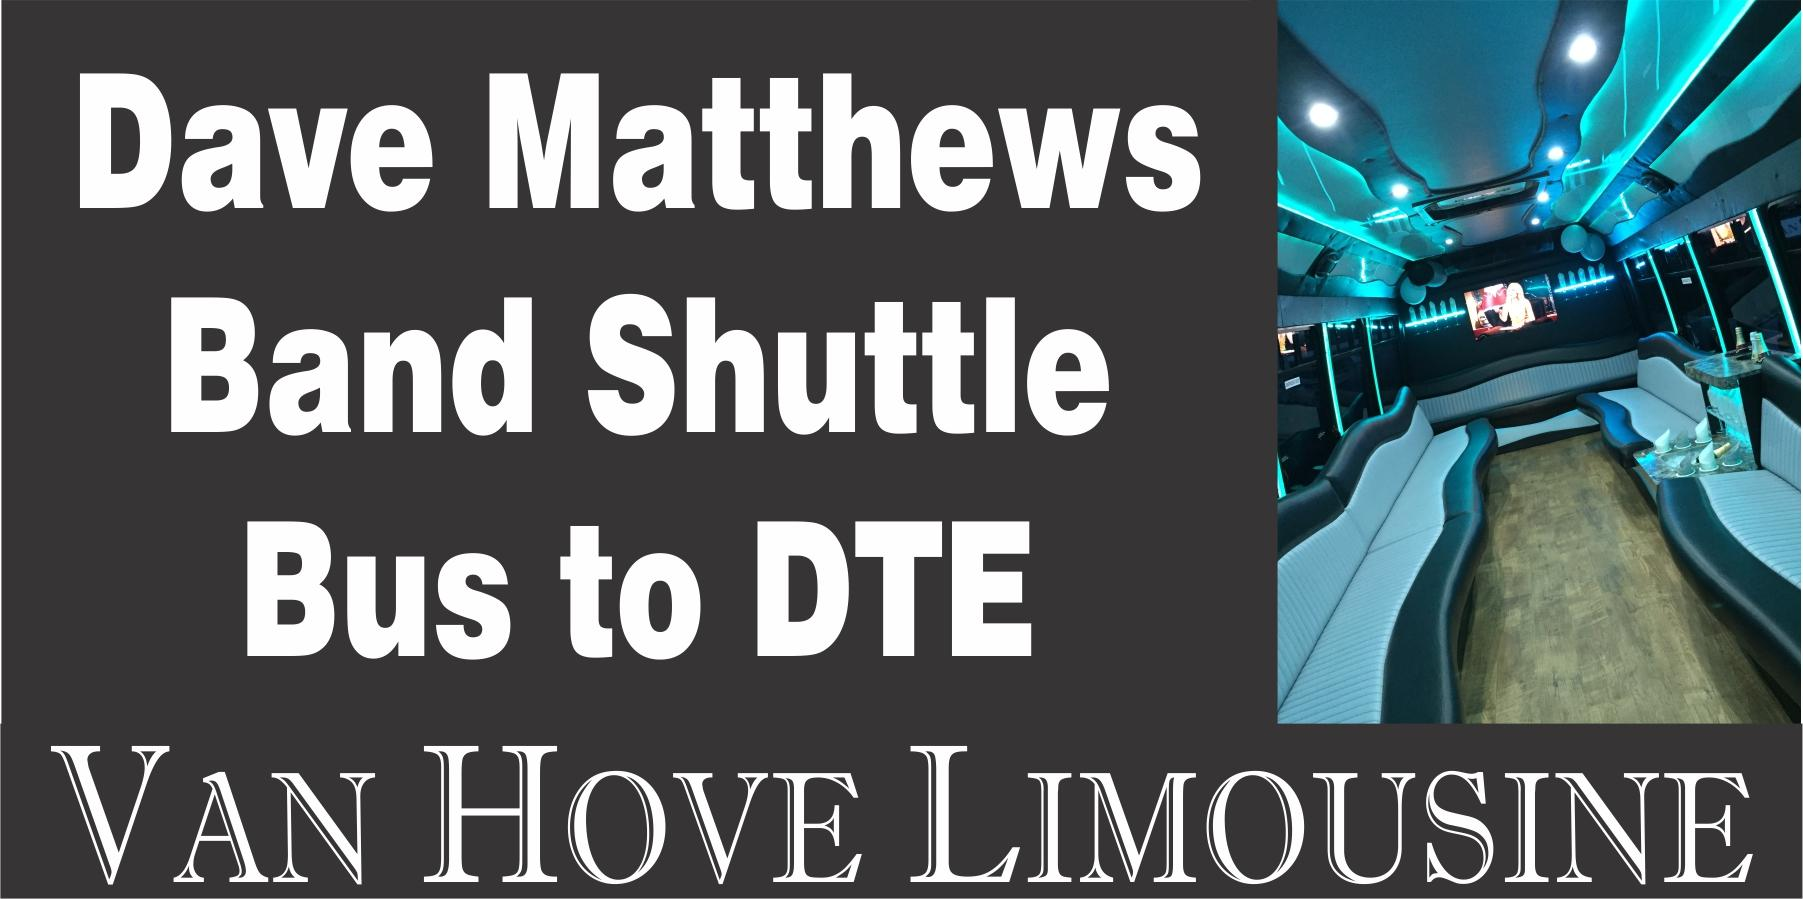 Dave Mathews Band Shuttle Bus to DTE from Hamlin Pub 22 Mile & Hayes